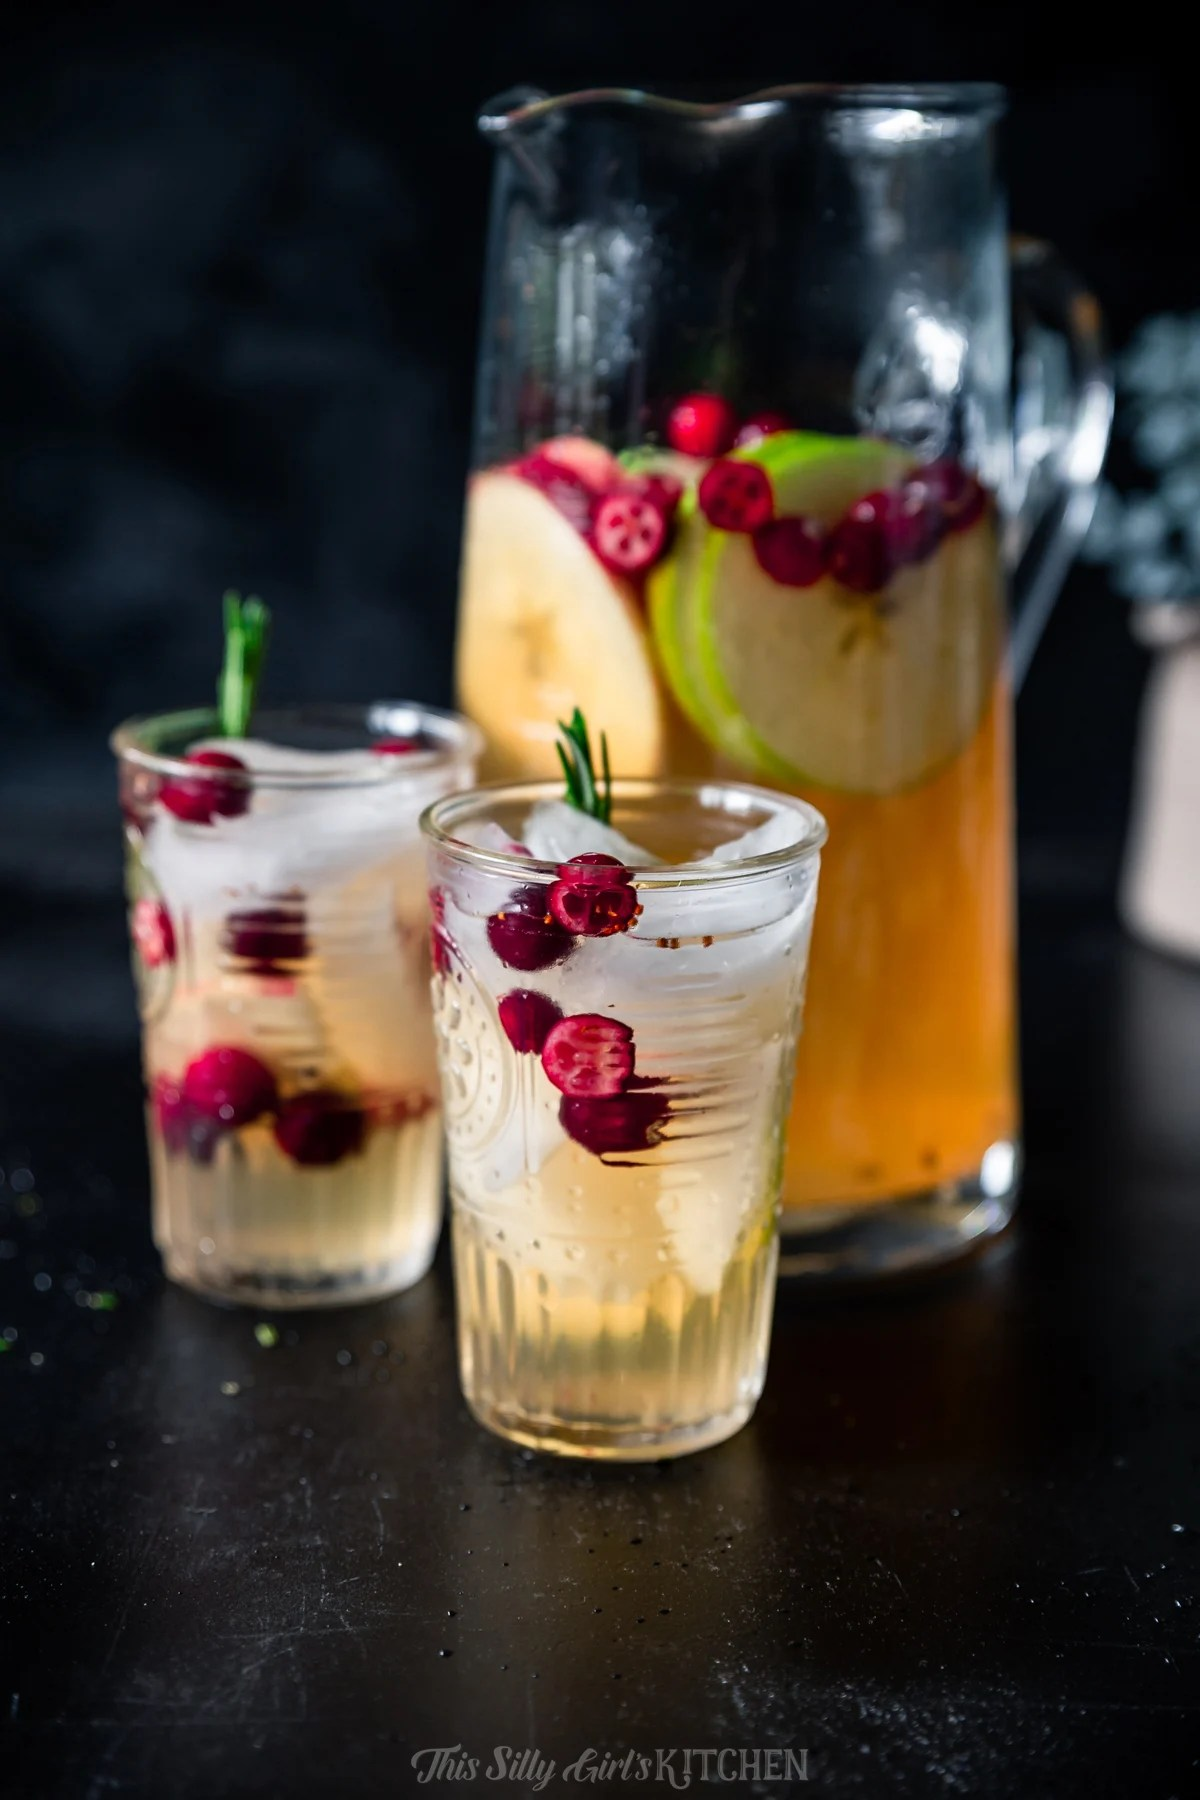 Two glasses and pitcher of white wine sangria on black table